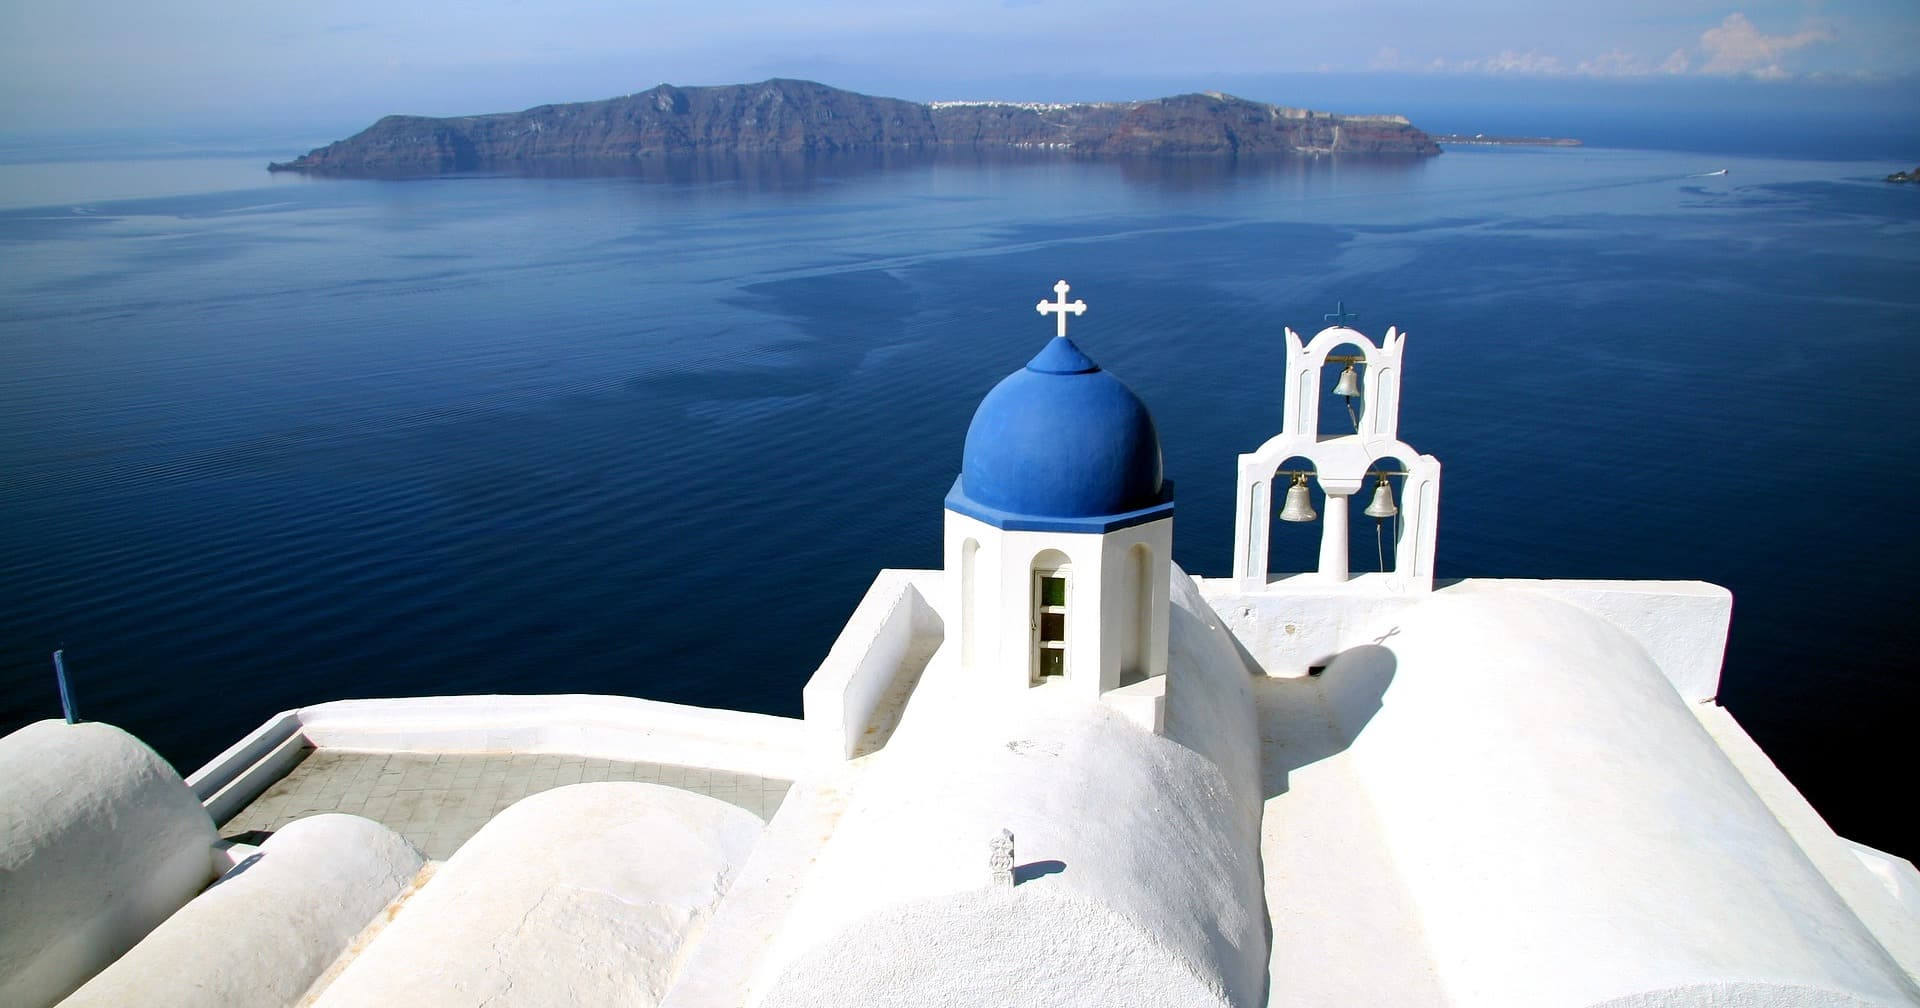 Tips for Island Hopping in Greece